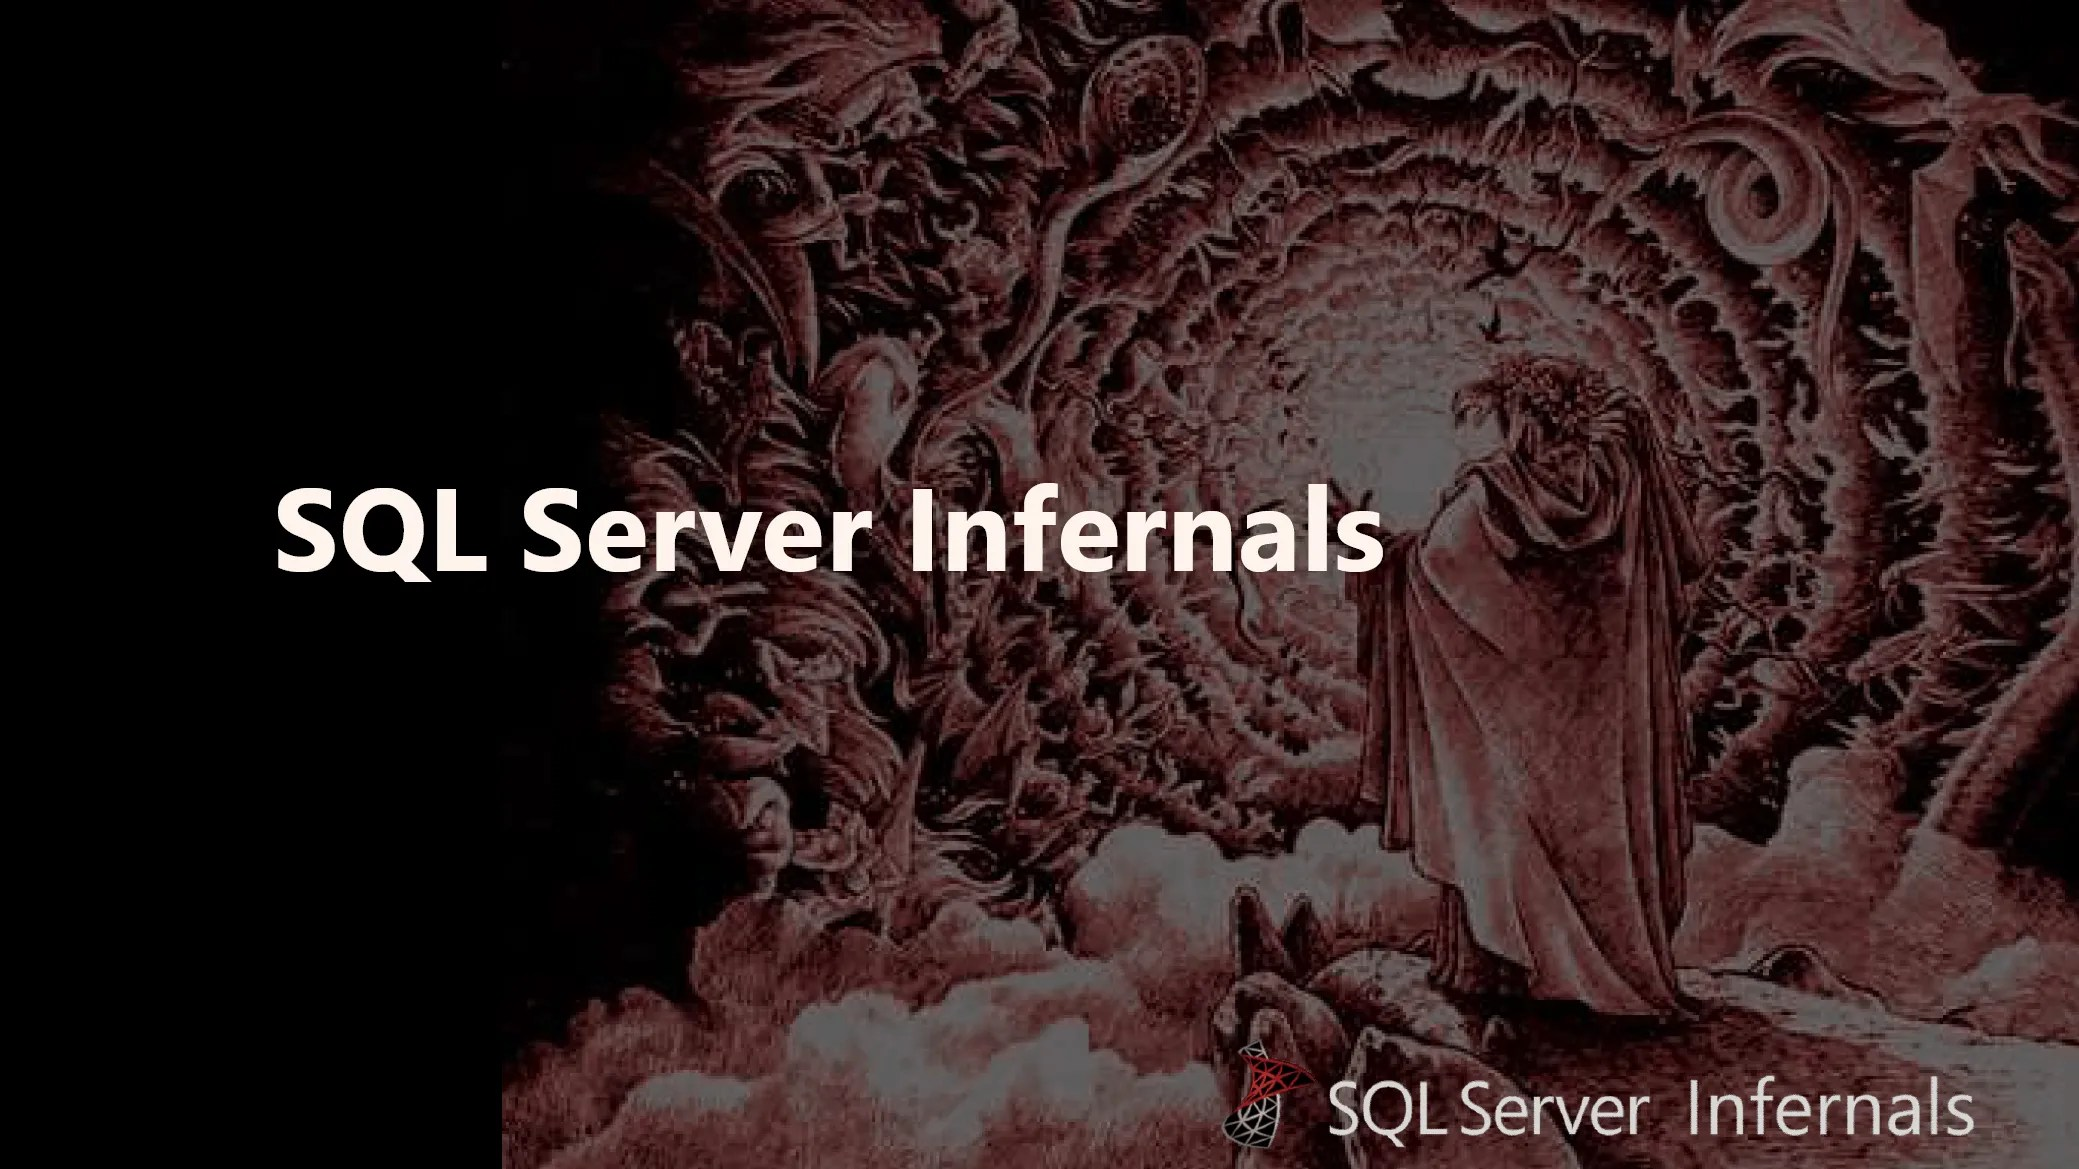 SQL Server Infernals – A Beginner's Guide to SQL Server Worst Practices